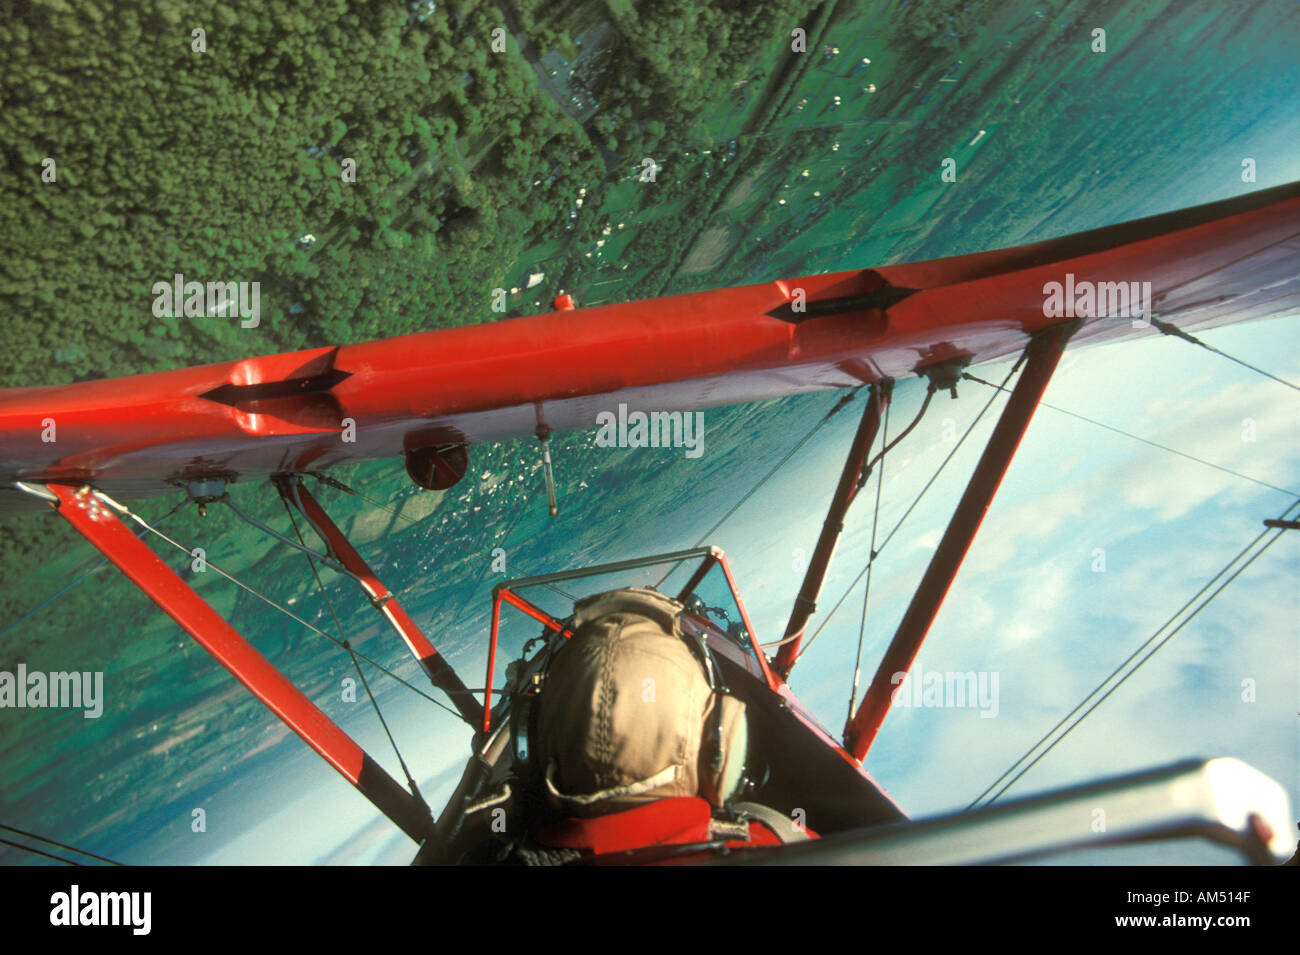 red stearman bi plane does a barrel roll - Stock Image